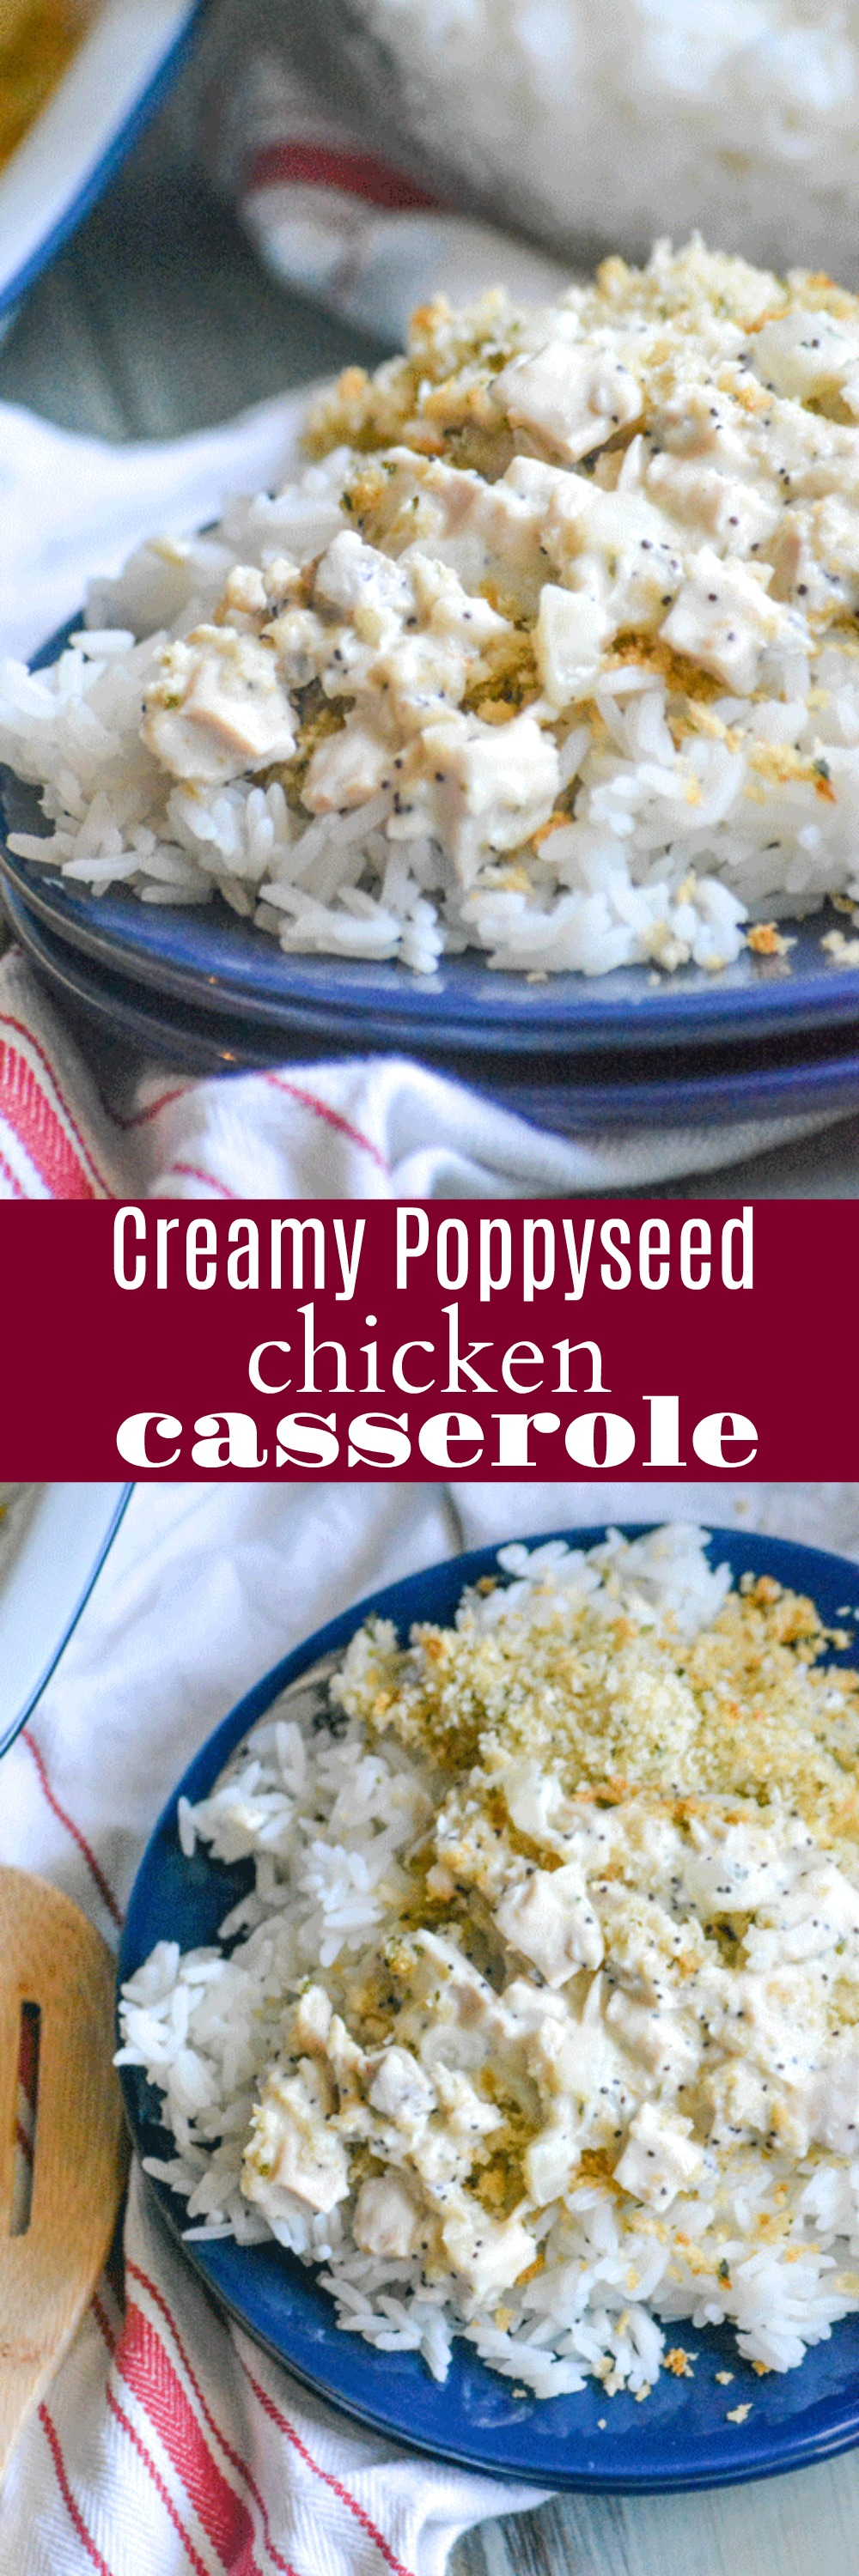 A creamy sauce laden with chunks of chicken, onions, garlic, & a sprinkle of poppy seeds is topped with a buttery cracker crumb topping.A quick and easy dinner solution, this Creamy Poppy Seed Chicken Casserole is just the meal you've been looking for.